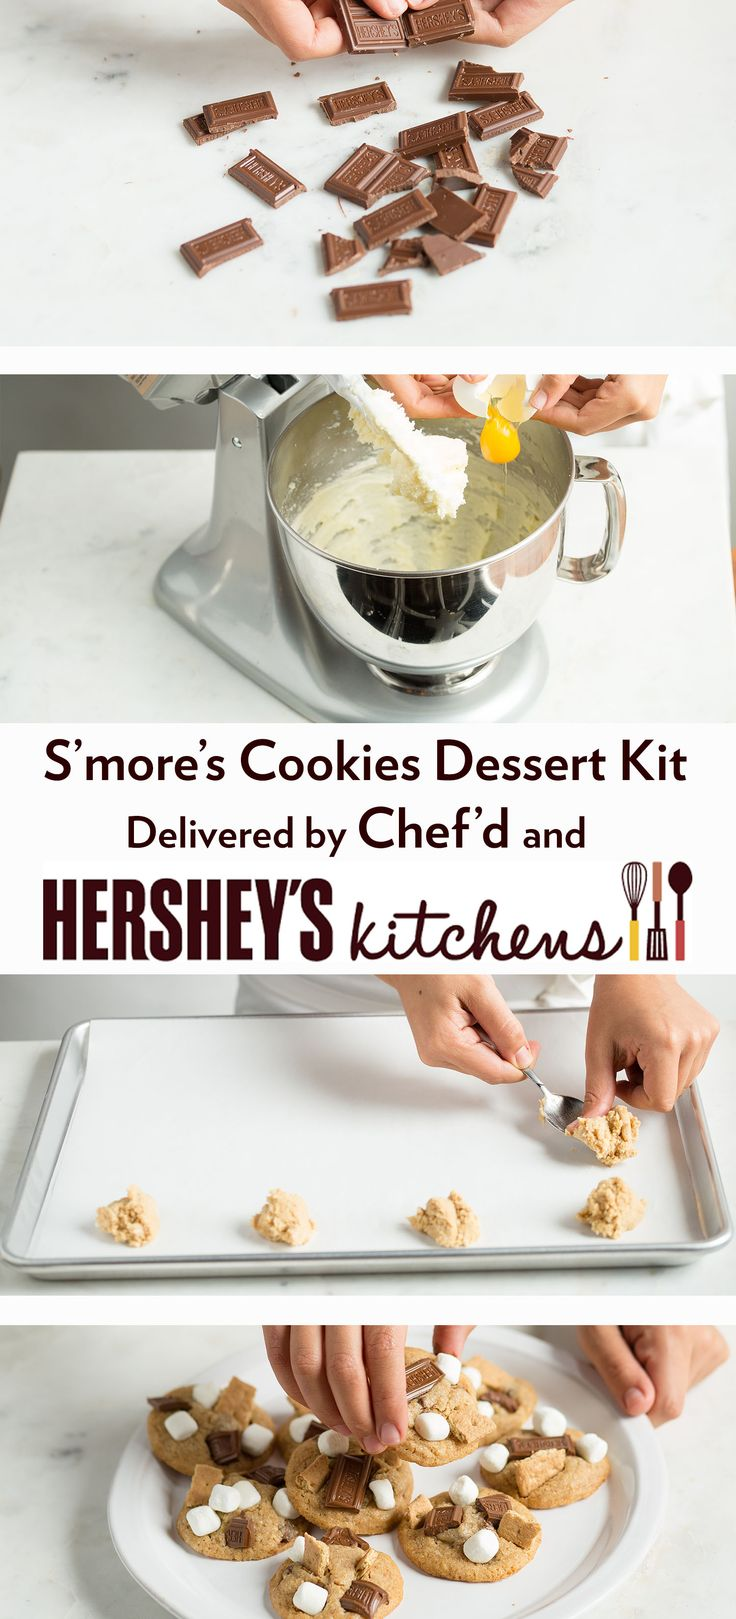 Elegant Su0027moreu0027s Cookies From HERSHEYu0027S Kitchens U0026 Chefu0027d! Order This Dessert Kit